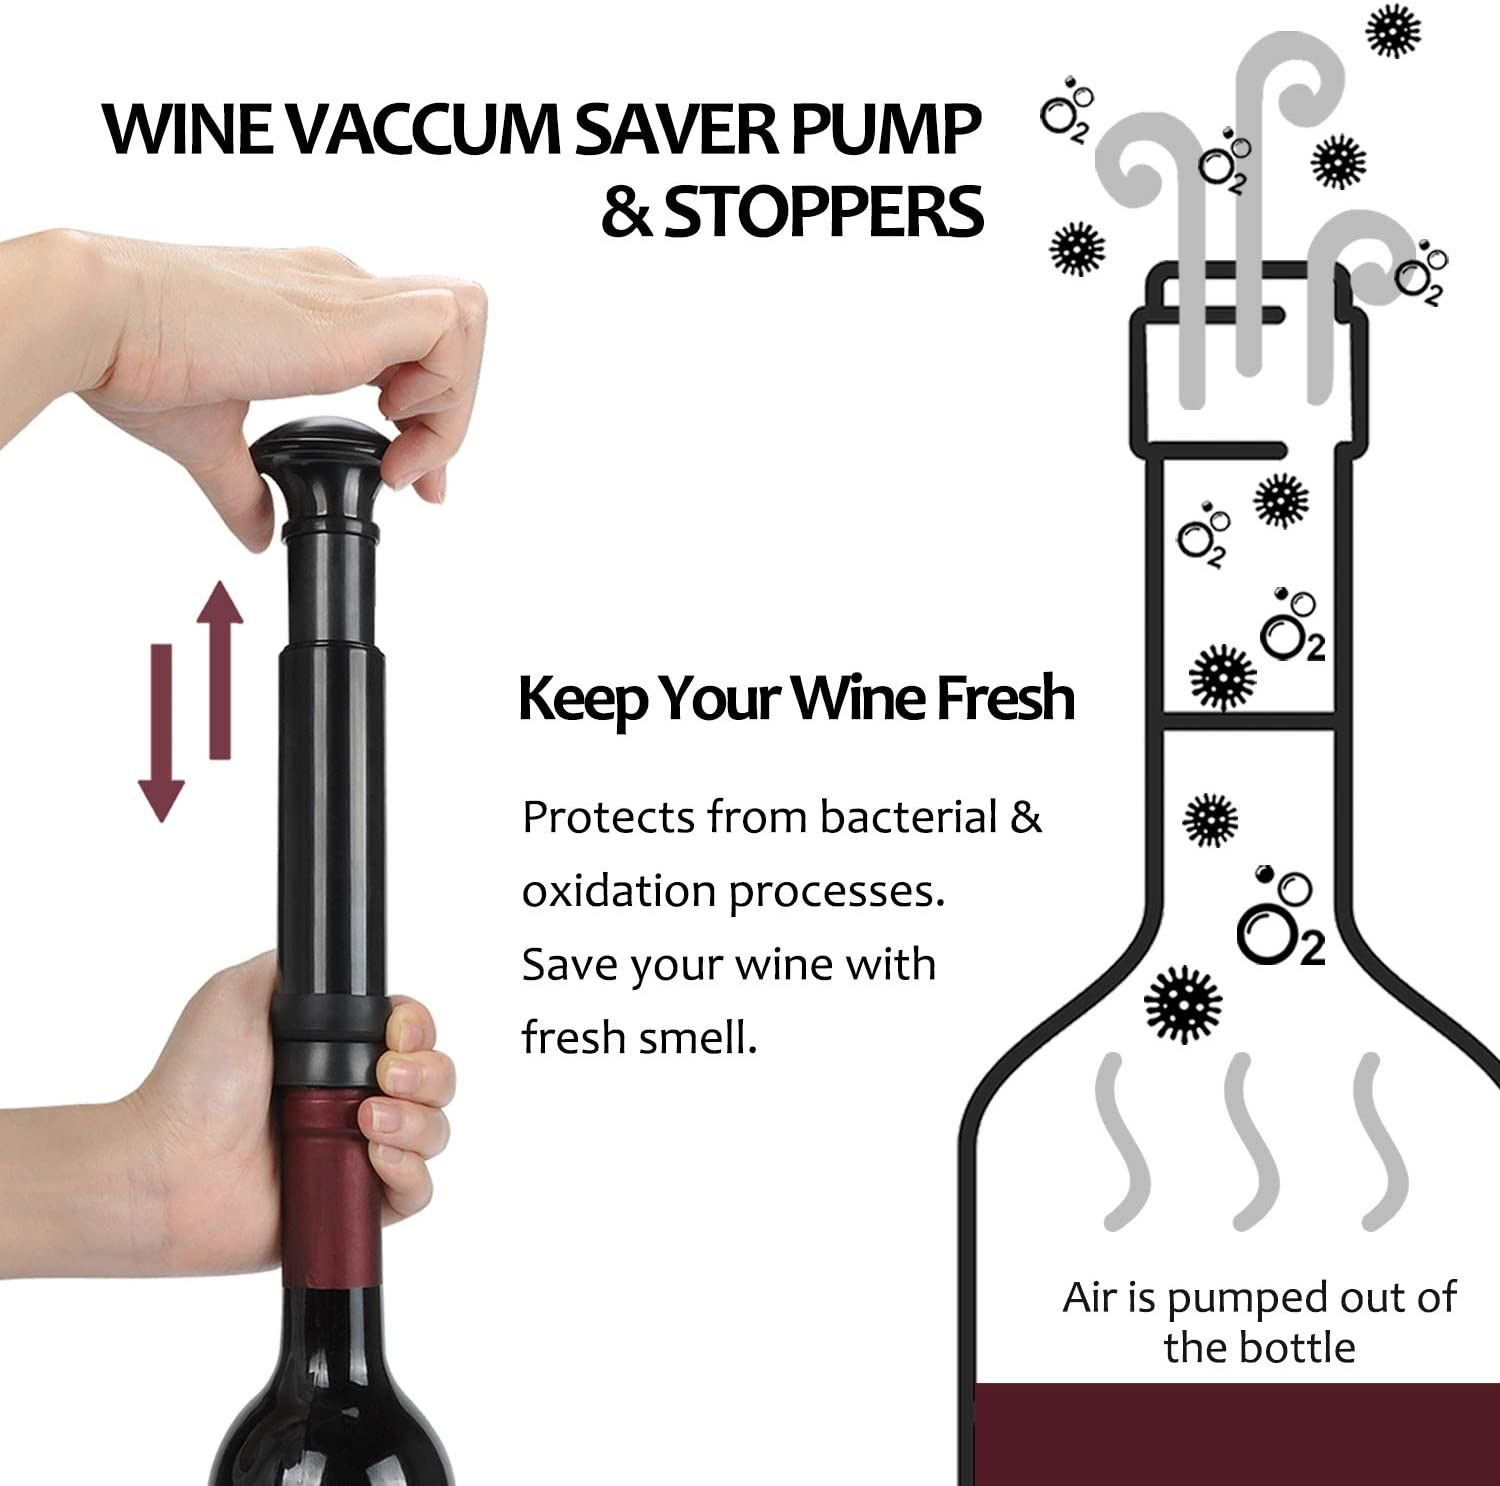 Perfect Wine Gifts Wine Pourer and Foil Cutter 2 Vacuum Stoppers Silver Kato Wine Bottle Cork Remover Accessory Tool Kit with Wine Saver Wine Air Pressure Pump Opener Set